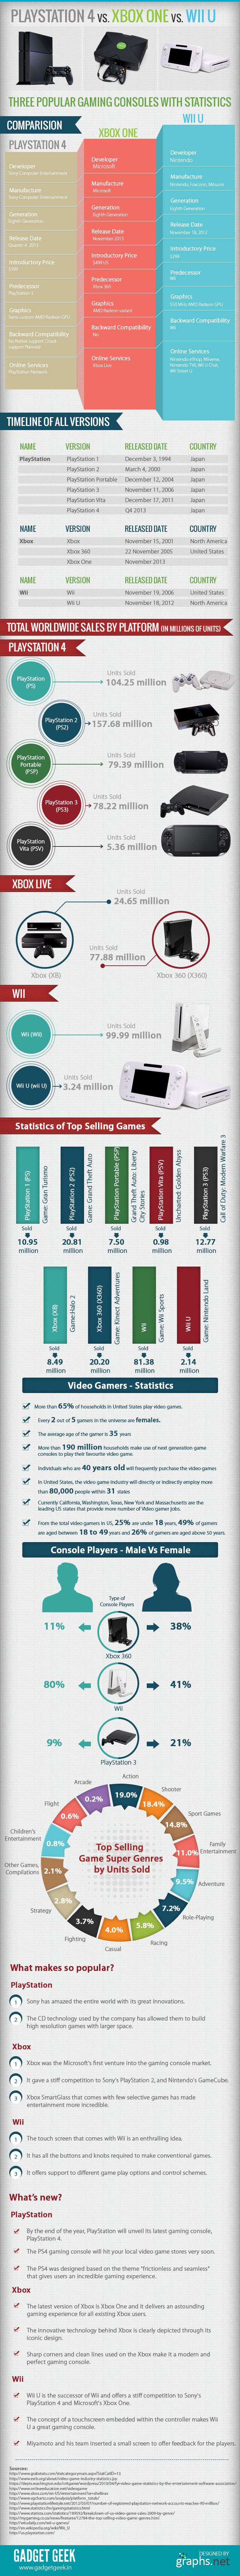 playstation_4_vs_xbox_one_vs_wii_u_infographic